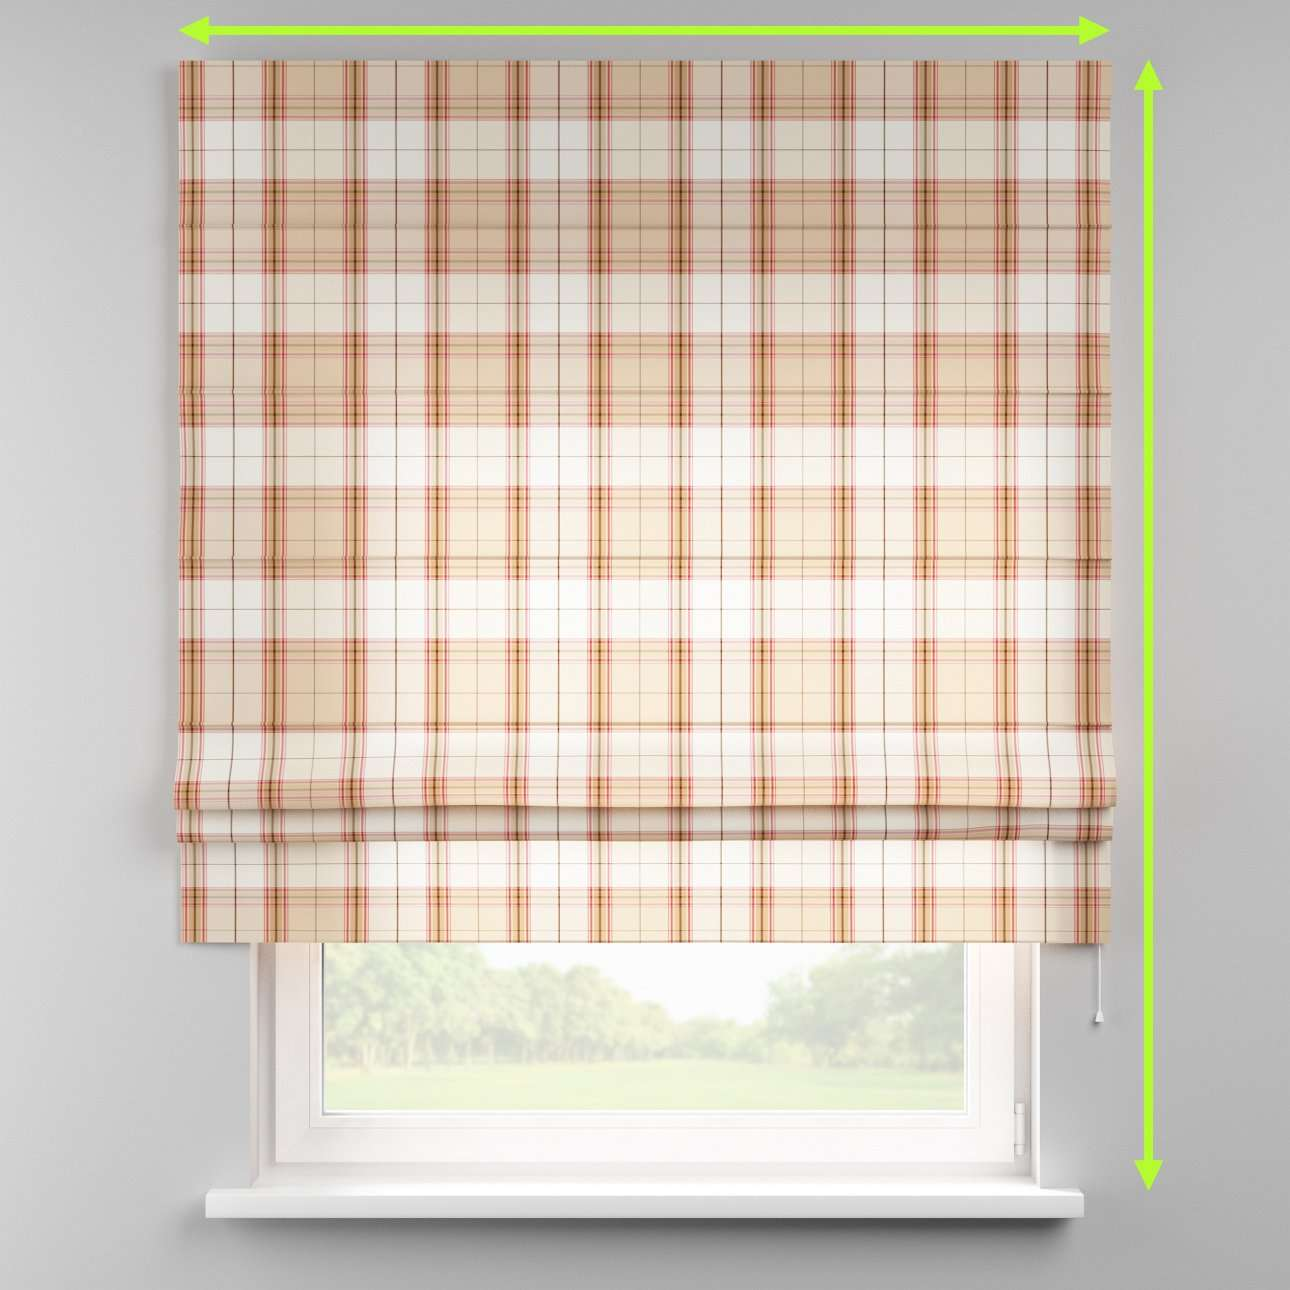 Padva roman blind  in collection Bristol, fabric: 125-09